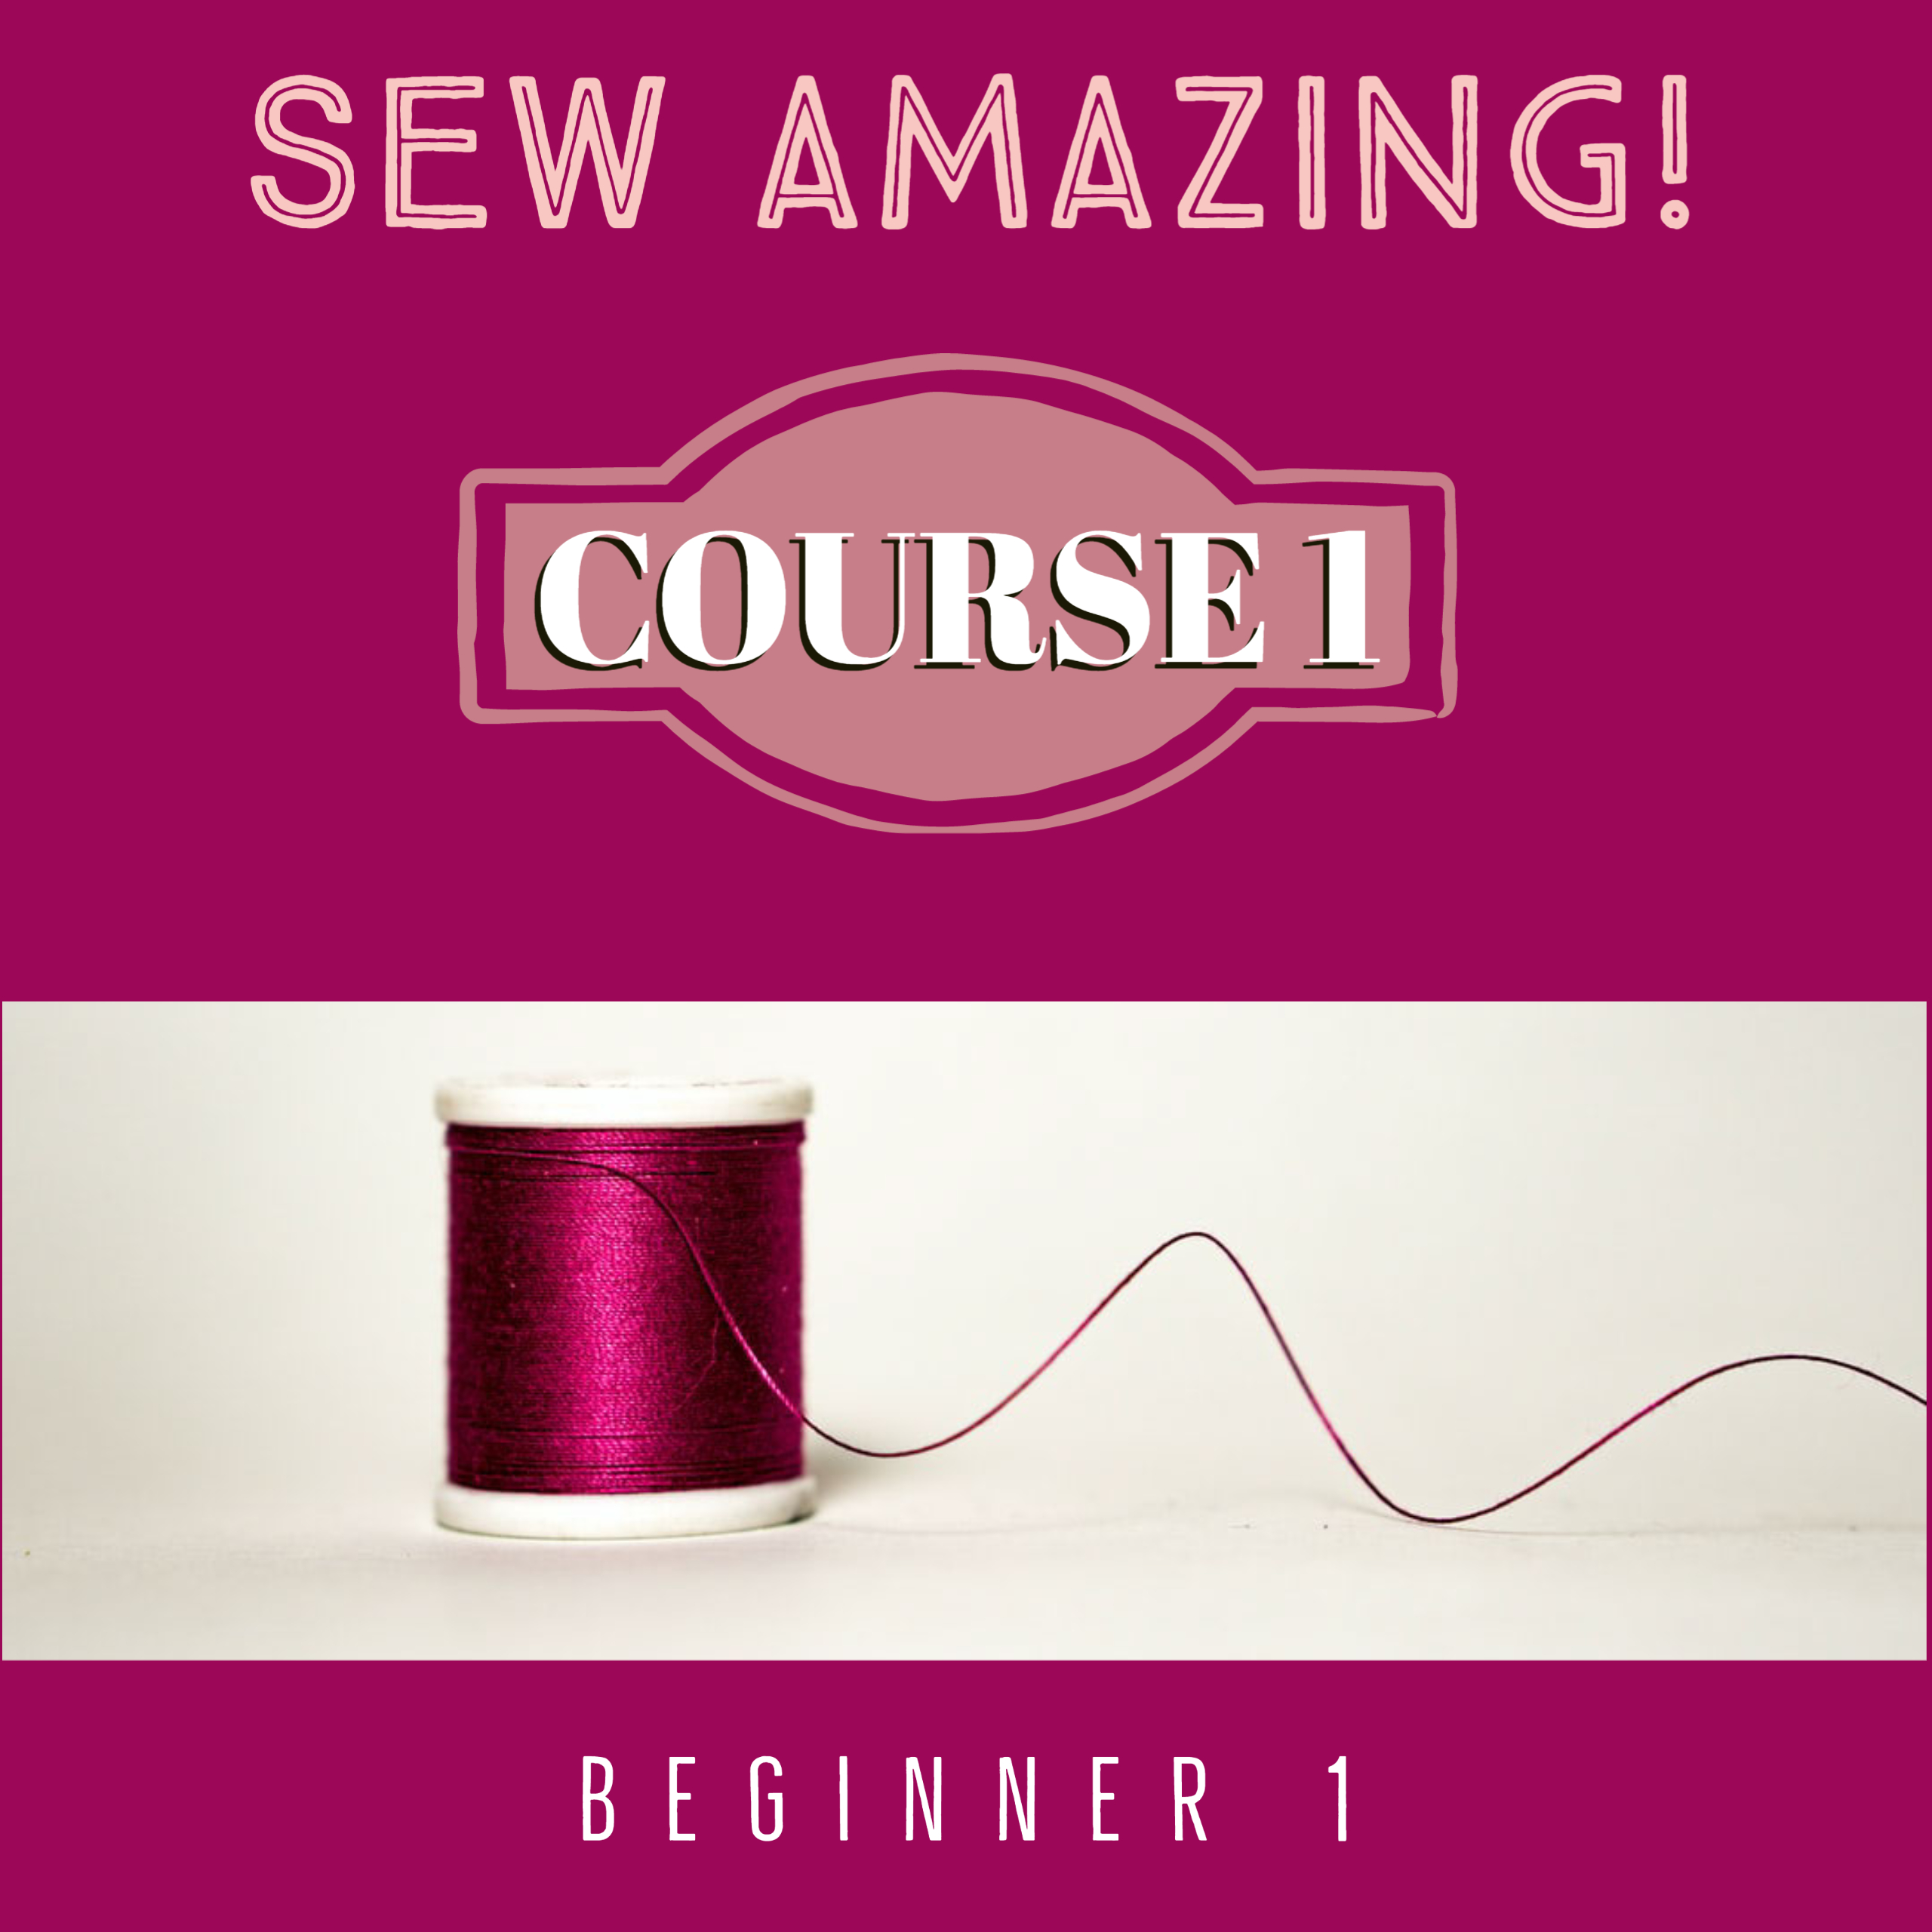 kasha-sewing-and-fashion-center.teachable.com/p/beginner-1-course-1